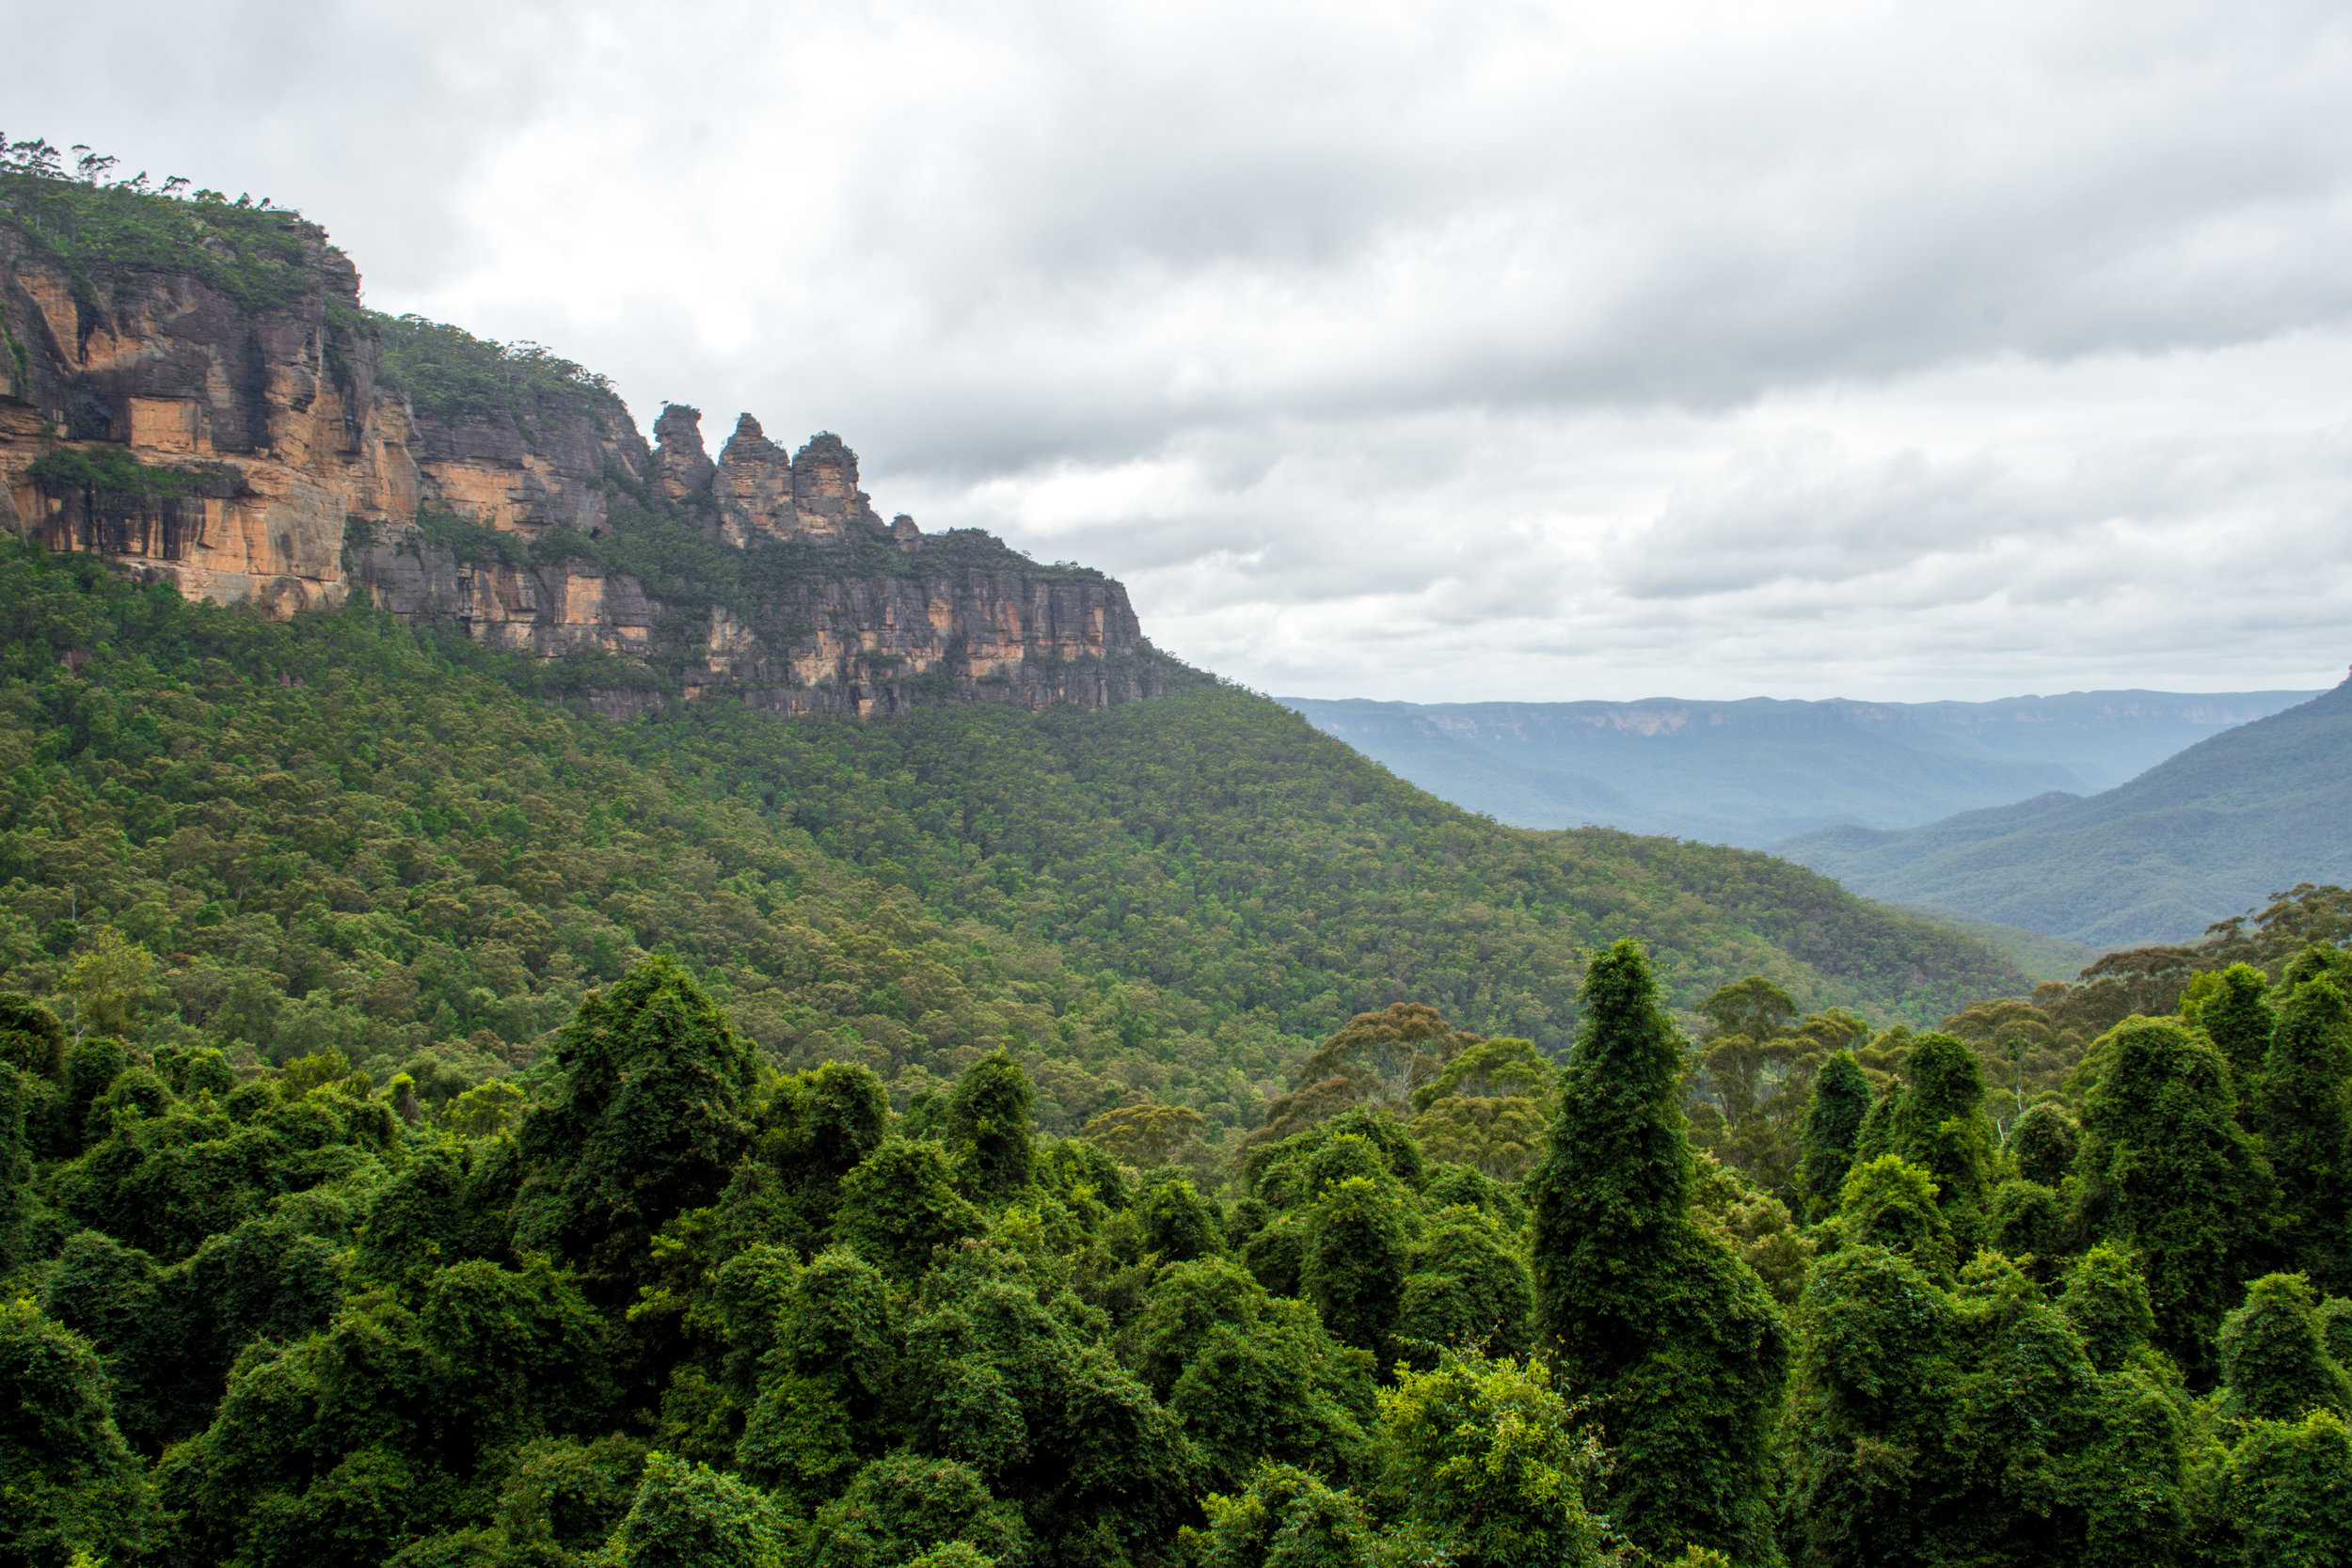 View of the Three Sisters from the Scenic Railway